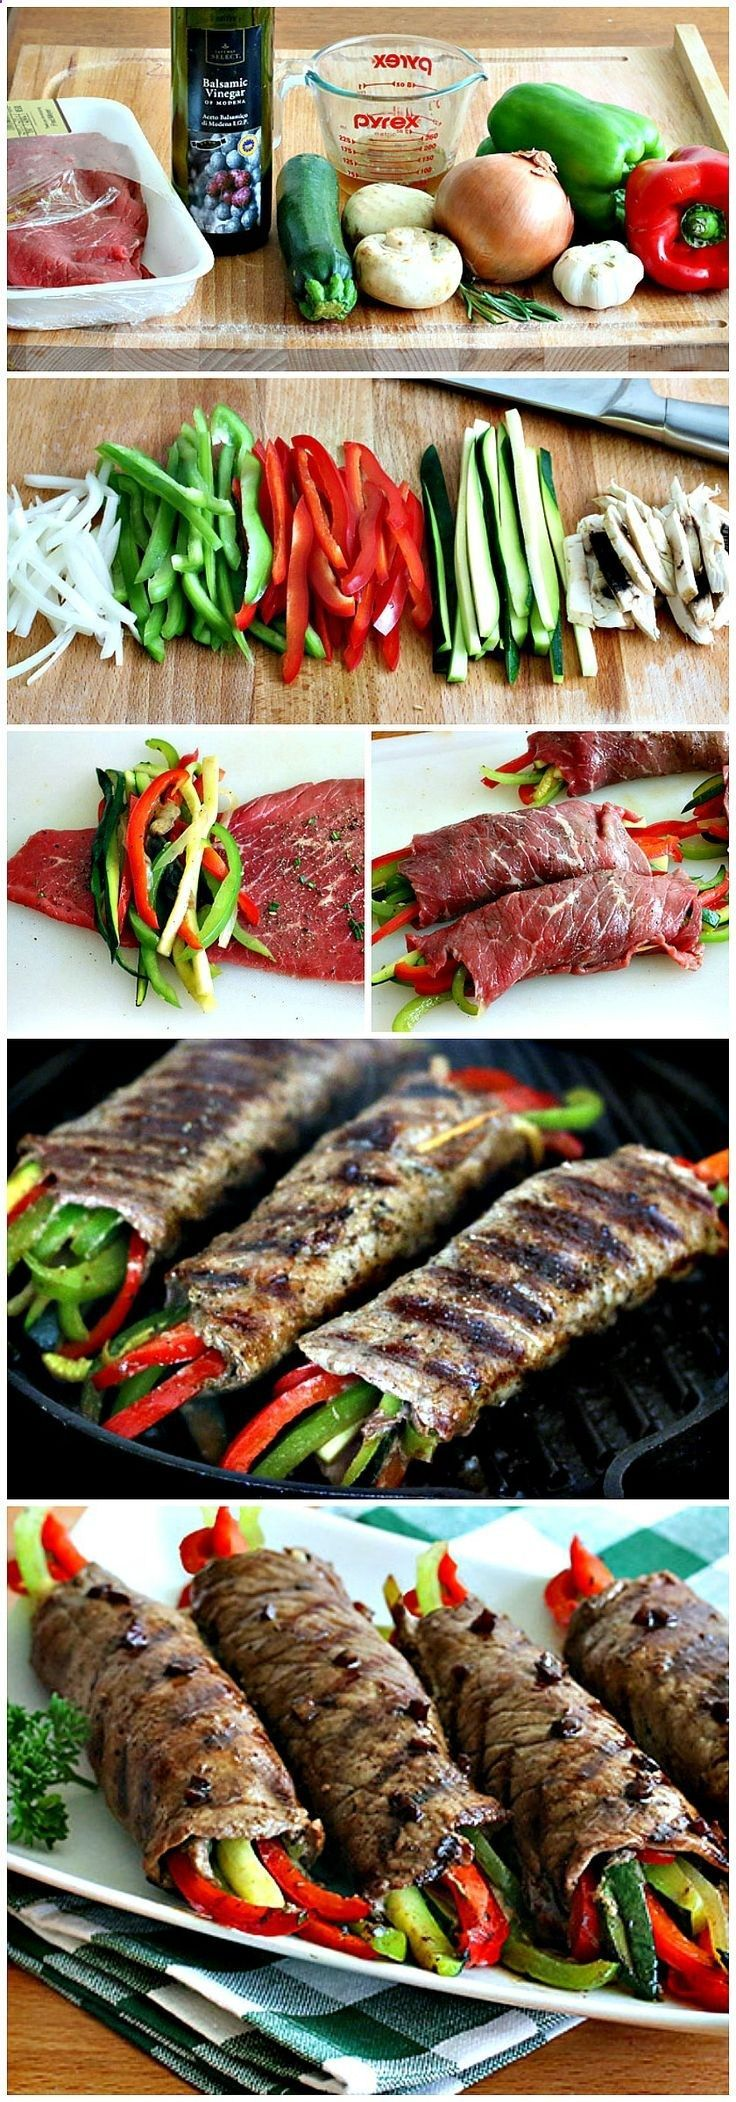 BalsamicGlazed Steak Rolls is part of Food - Tender steak rolls filled with zesty vegetables and drizzled with a glaze that is simply outofthisworld delicious